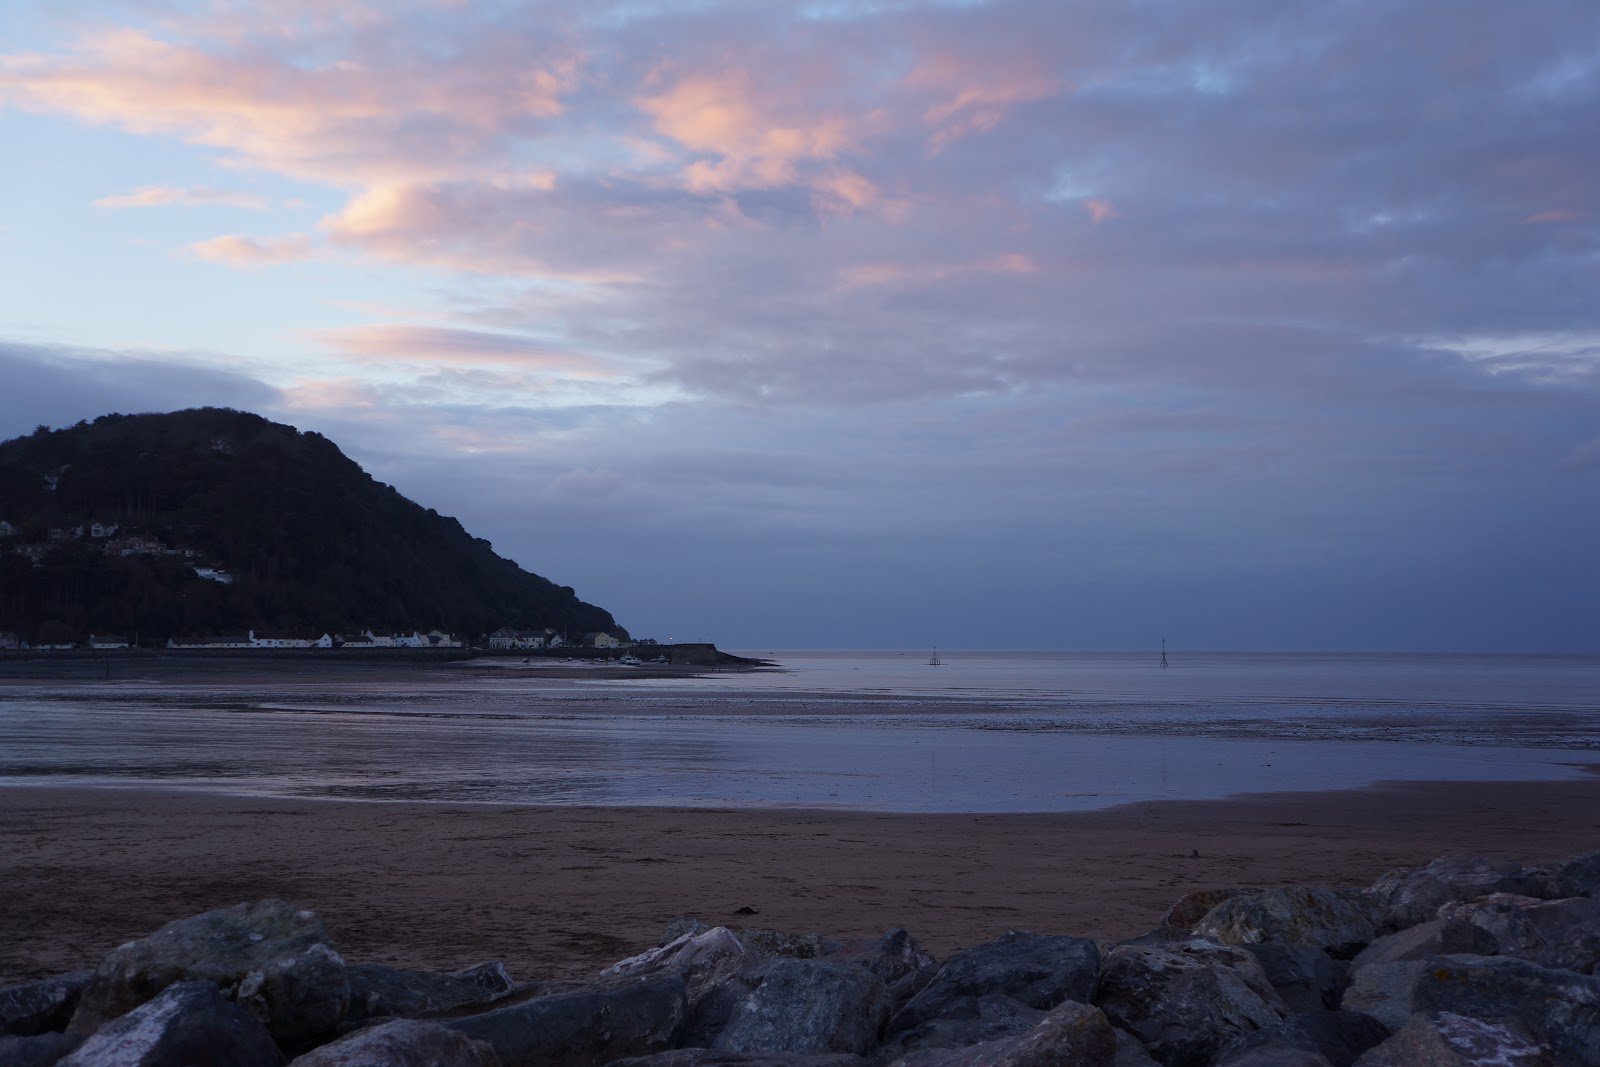 butlins minehead beach in the evening light